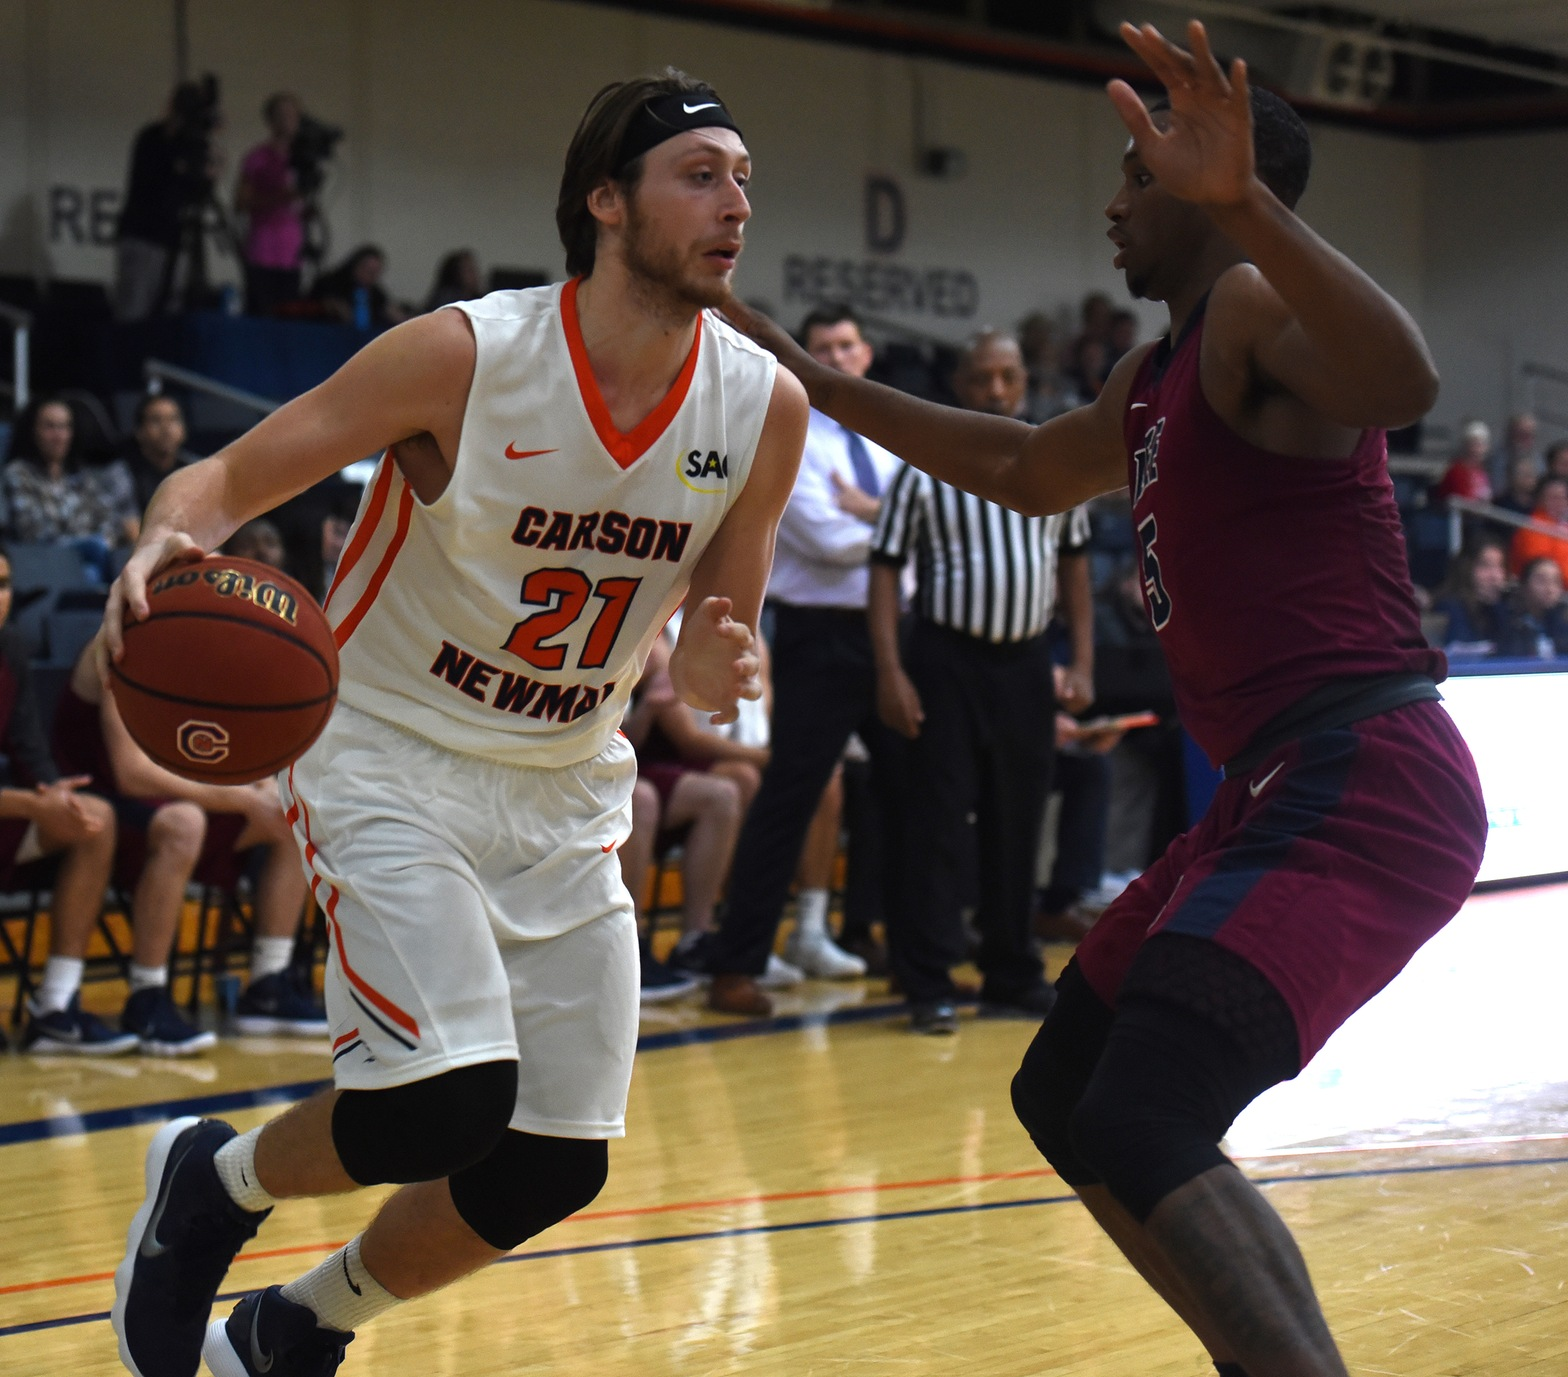 Bates, Teichmann carry Eagles over Lander 77-65